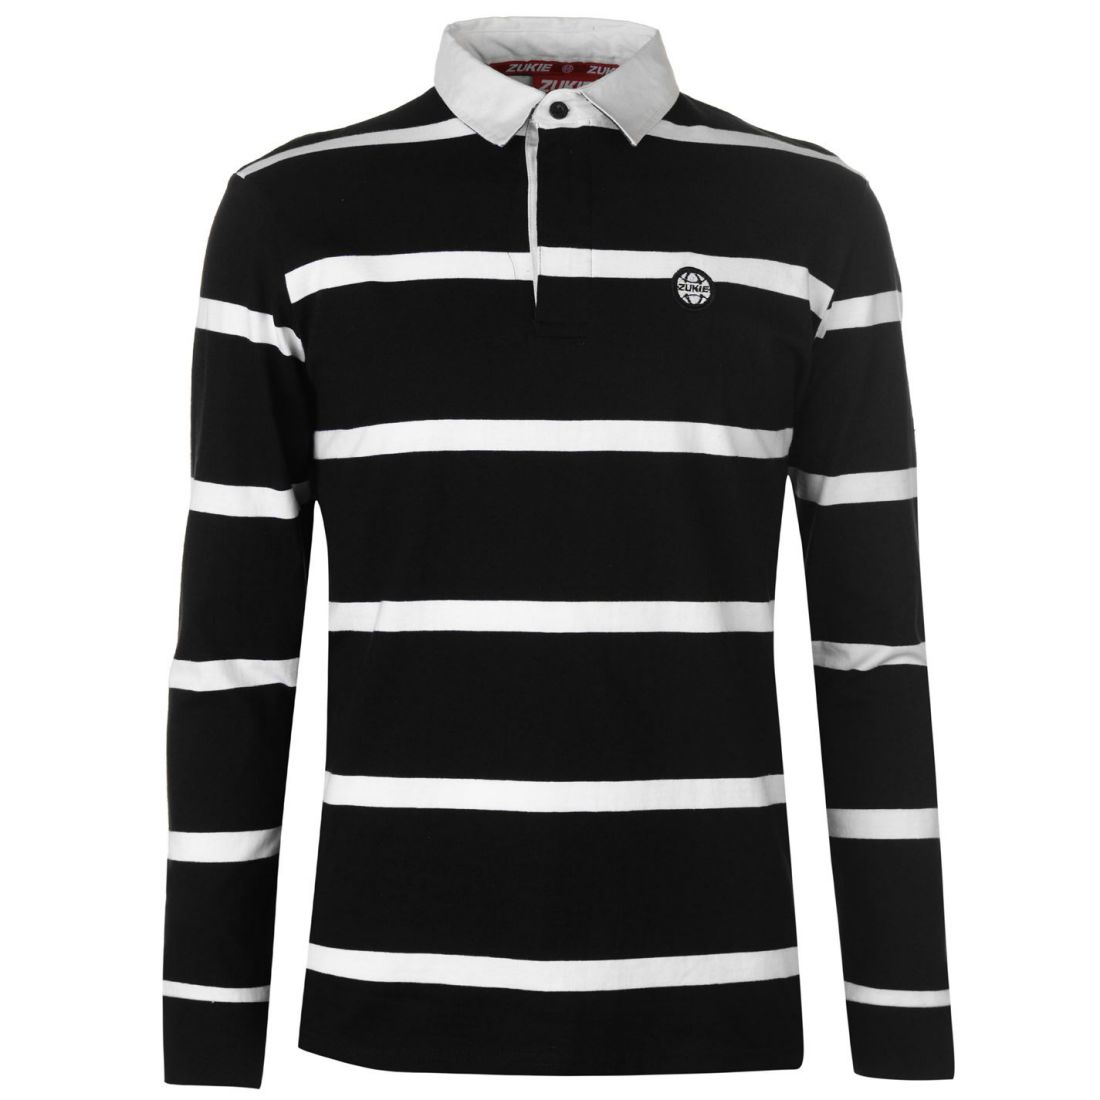 Clothing, Shoes & Accessories Industrious Zukie Rugby Shirt Mens Gents Polo Tee Top Full Length Sleeve Cotton Button To Prevent And Cure Diseases Casual Button-down Shirts